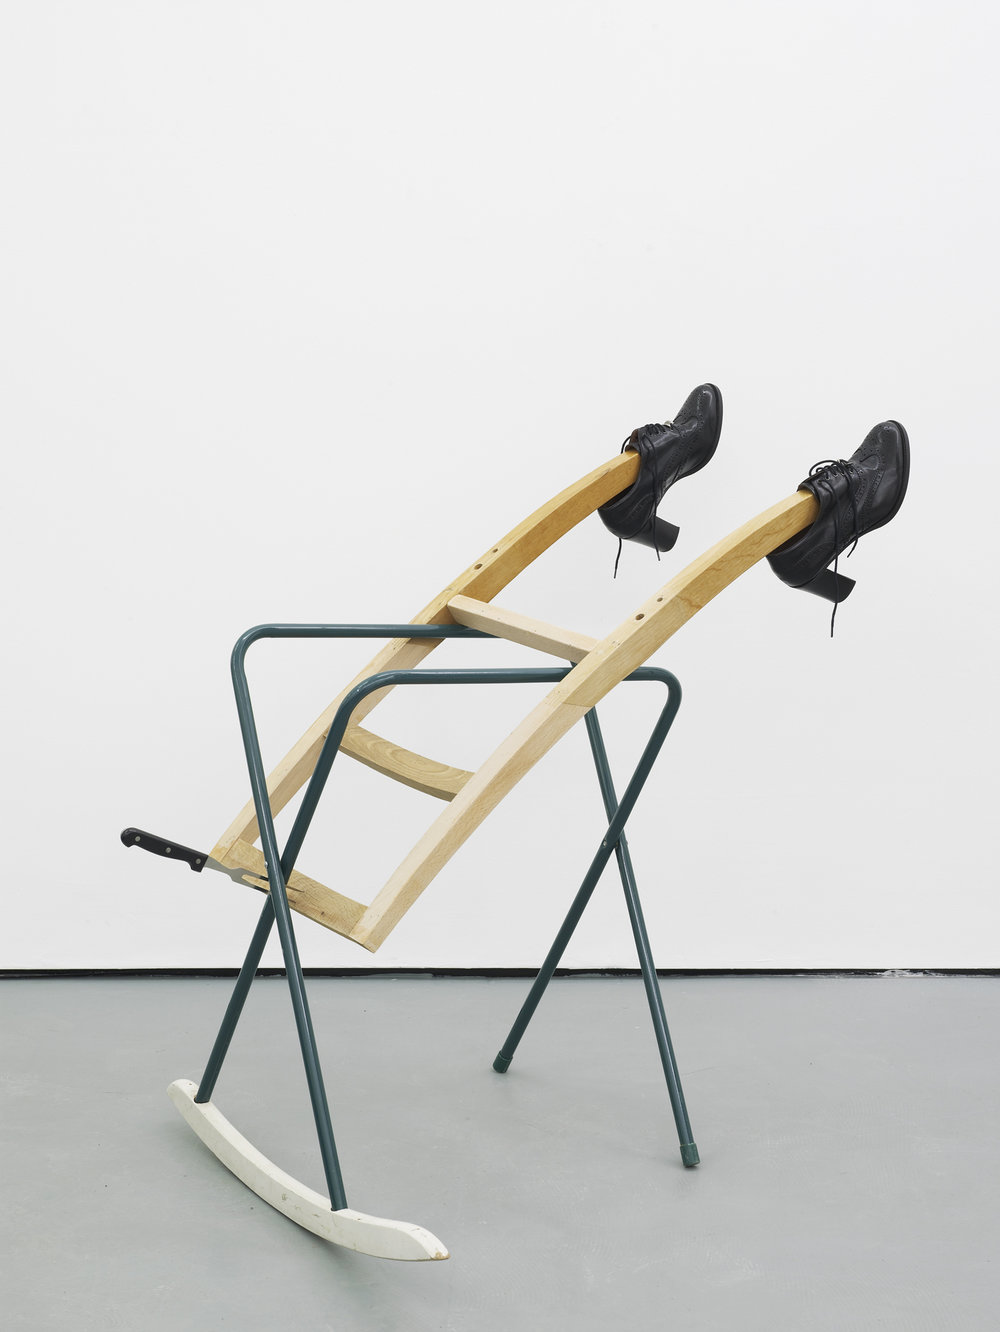 Catachresis ♯63 Tongues of the shoes, legs of the chair, legs of the table, teeth of the fork and arm of the chair 2016 Found materials 100 x 78 x 103 cm / 39.4 x 30.7 x 40.6 in